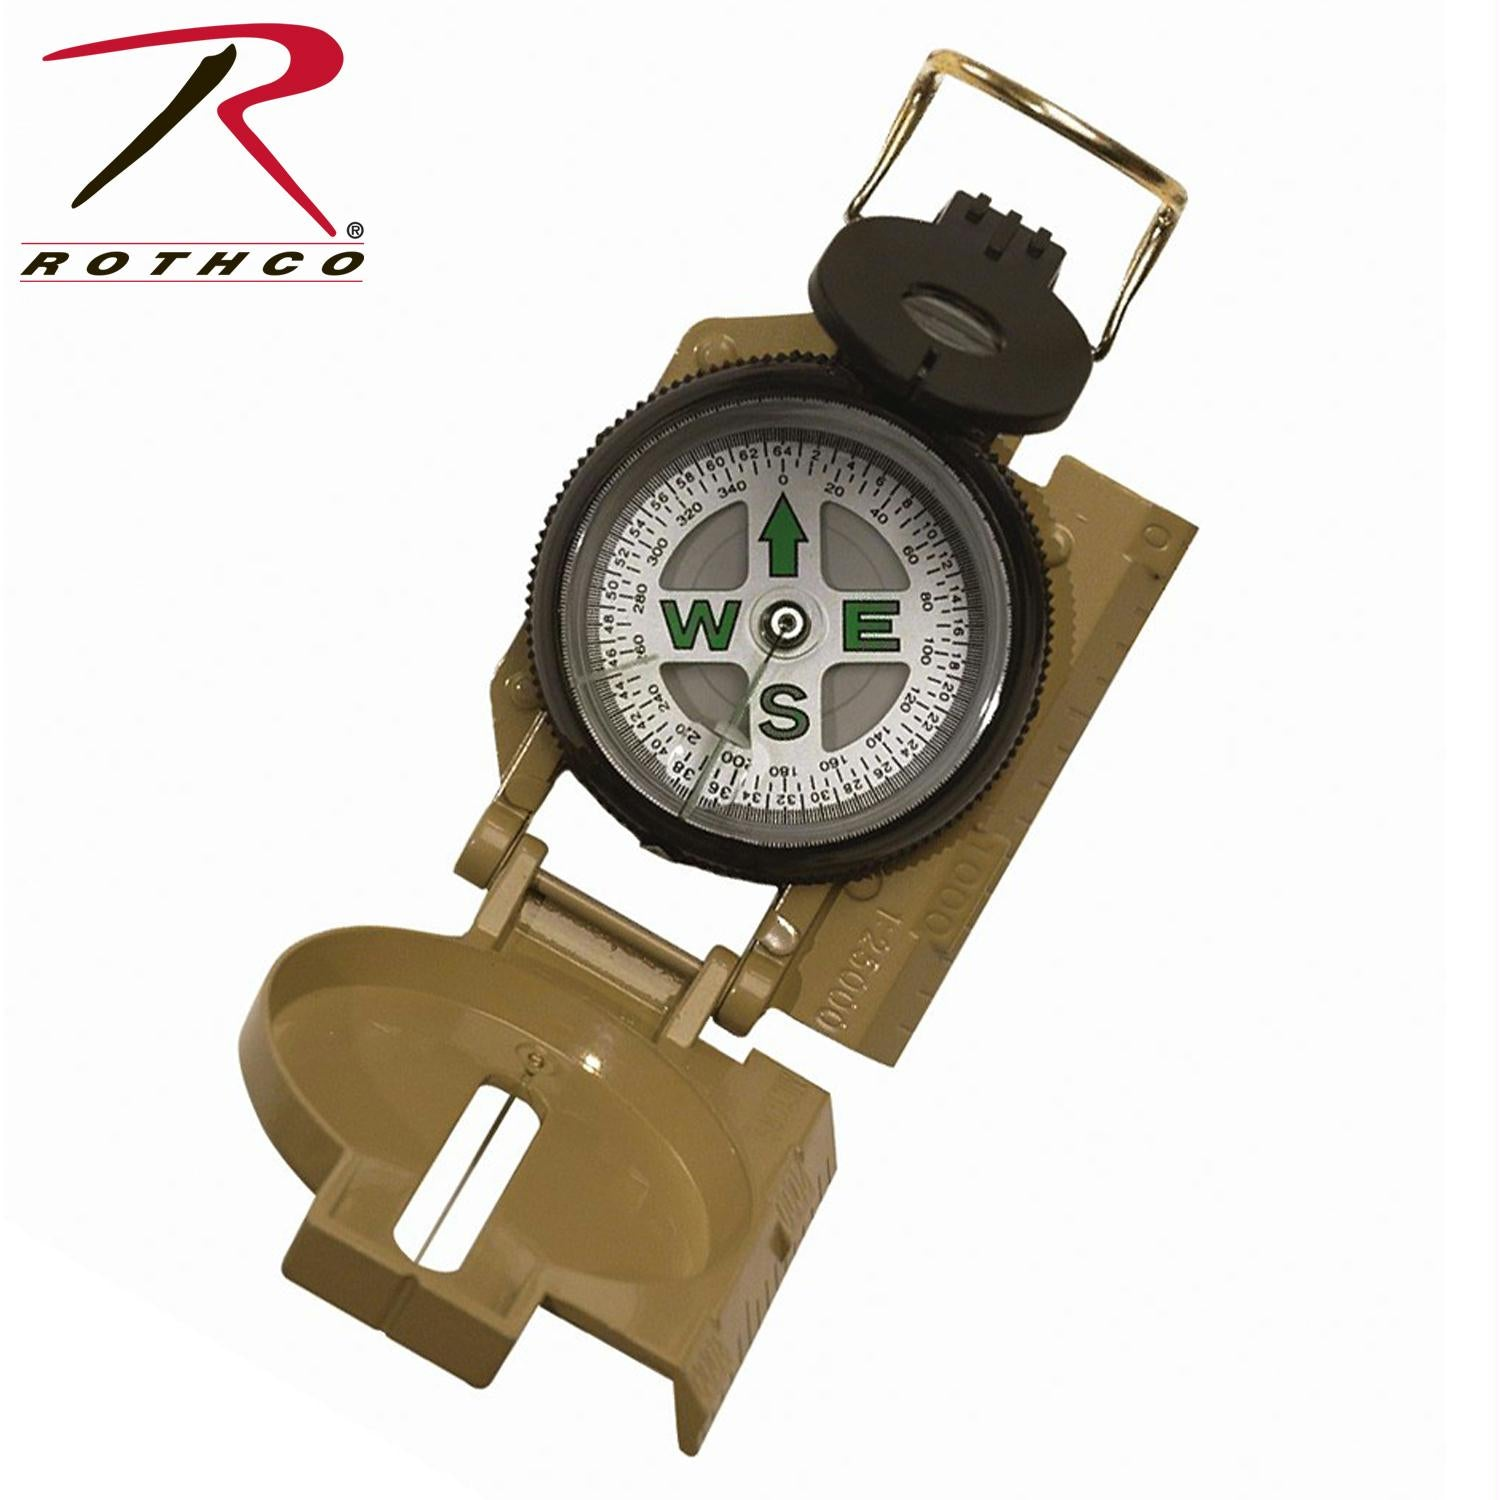 Rothco Military Marching Compass - Tan